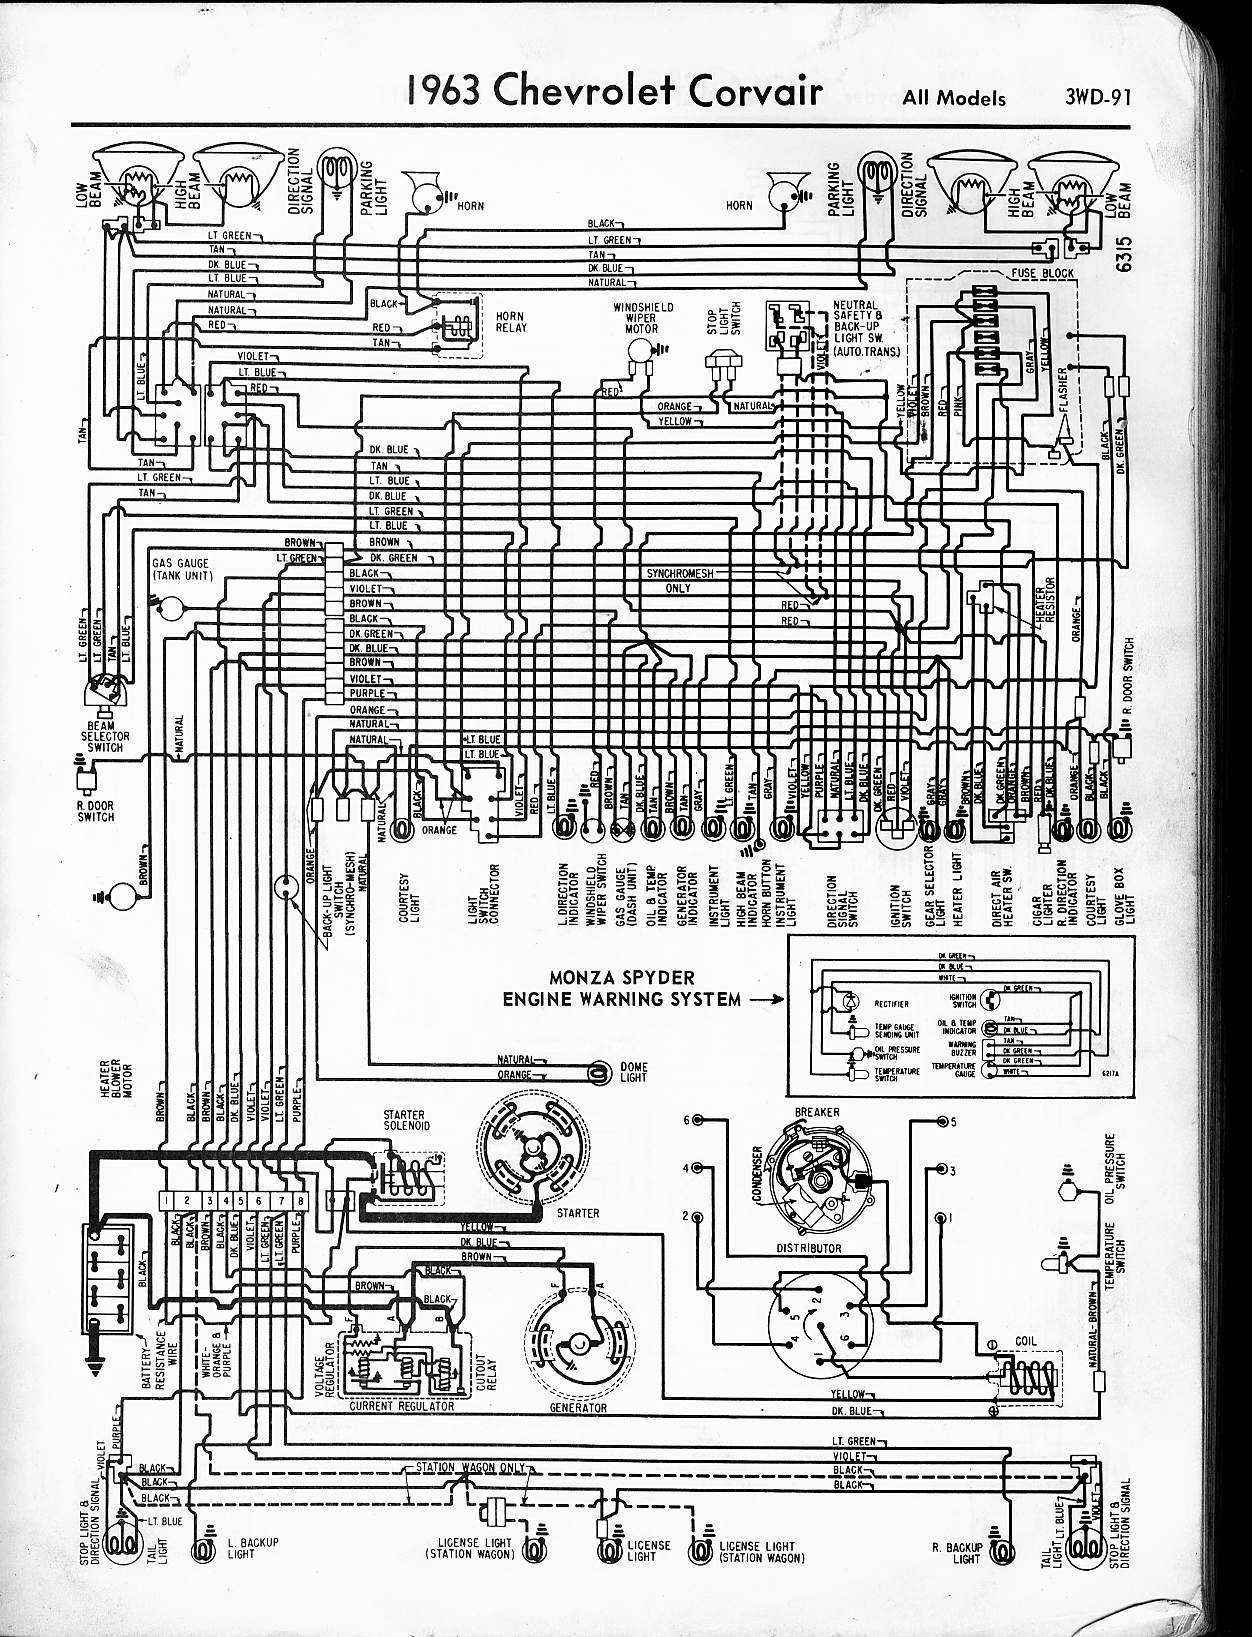 1965 El Camino Fuse Diagram Wiring Library Electric Fan Moreover 79 Ford Pinto Harness 57 65 Chevy Diagrams Chevelle